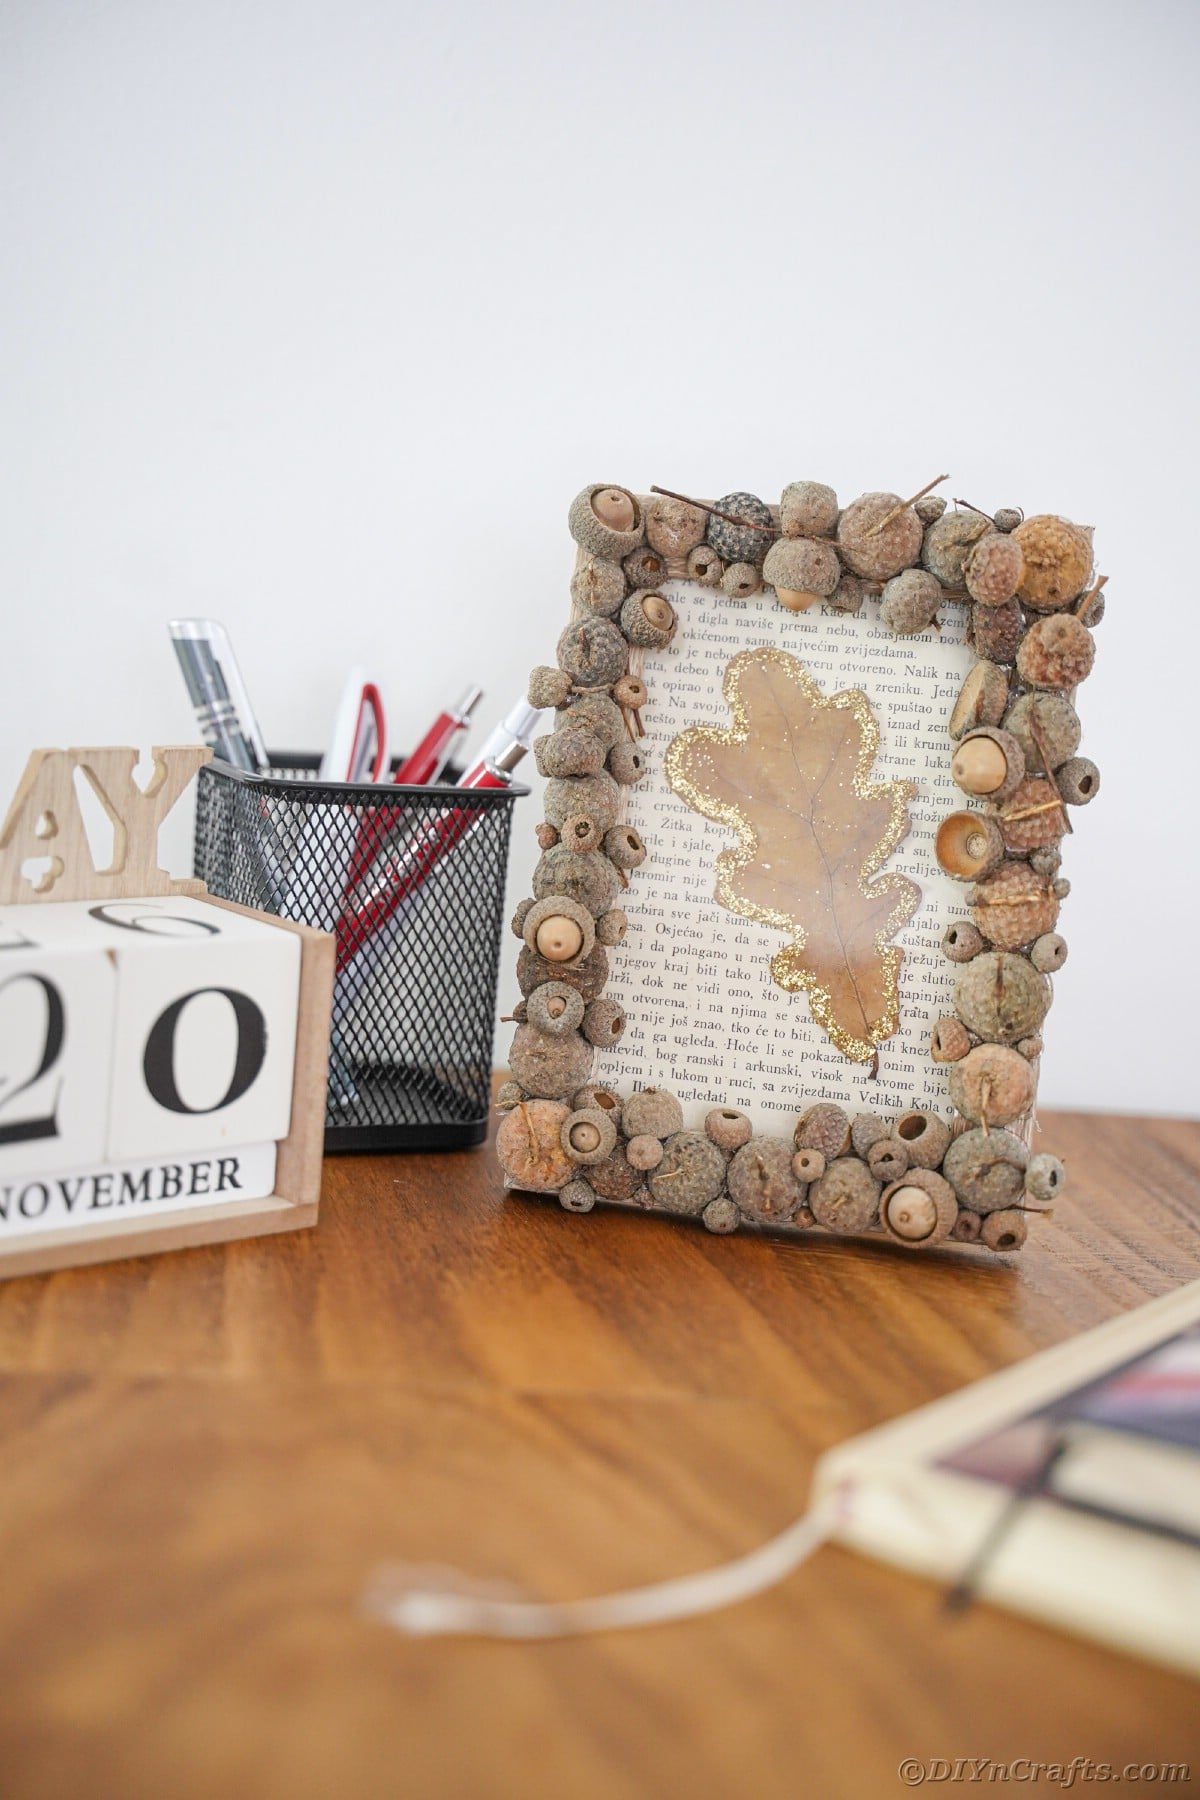 Desk with calendar blocks next to rustic picture frame